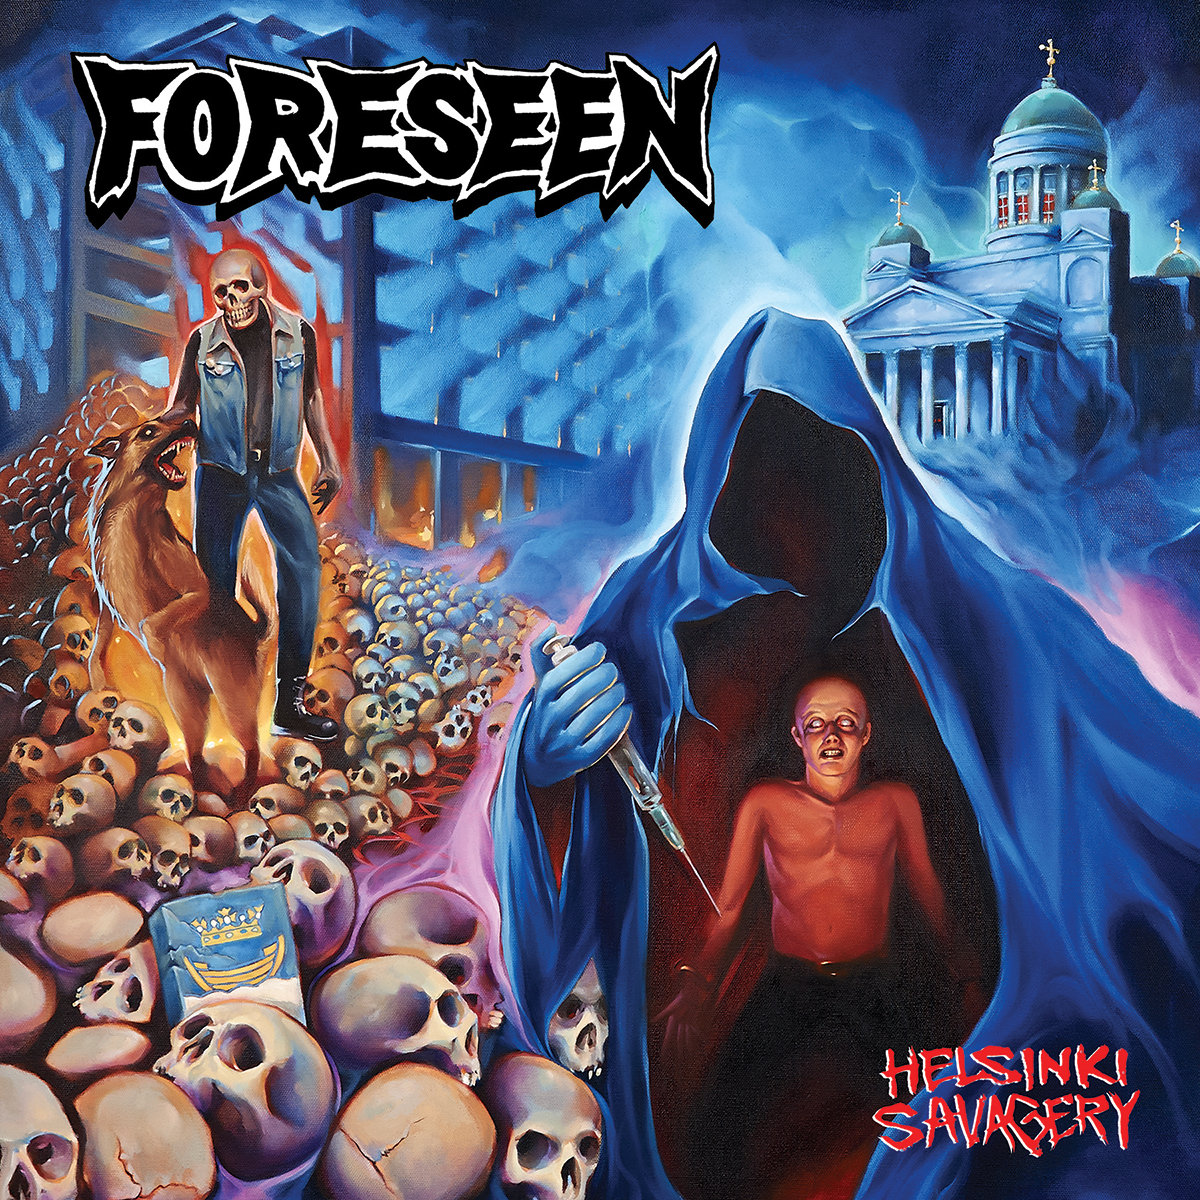 Foreseen - Helsinki Savagery